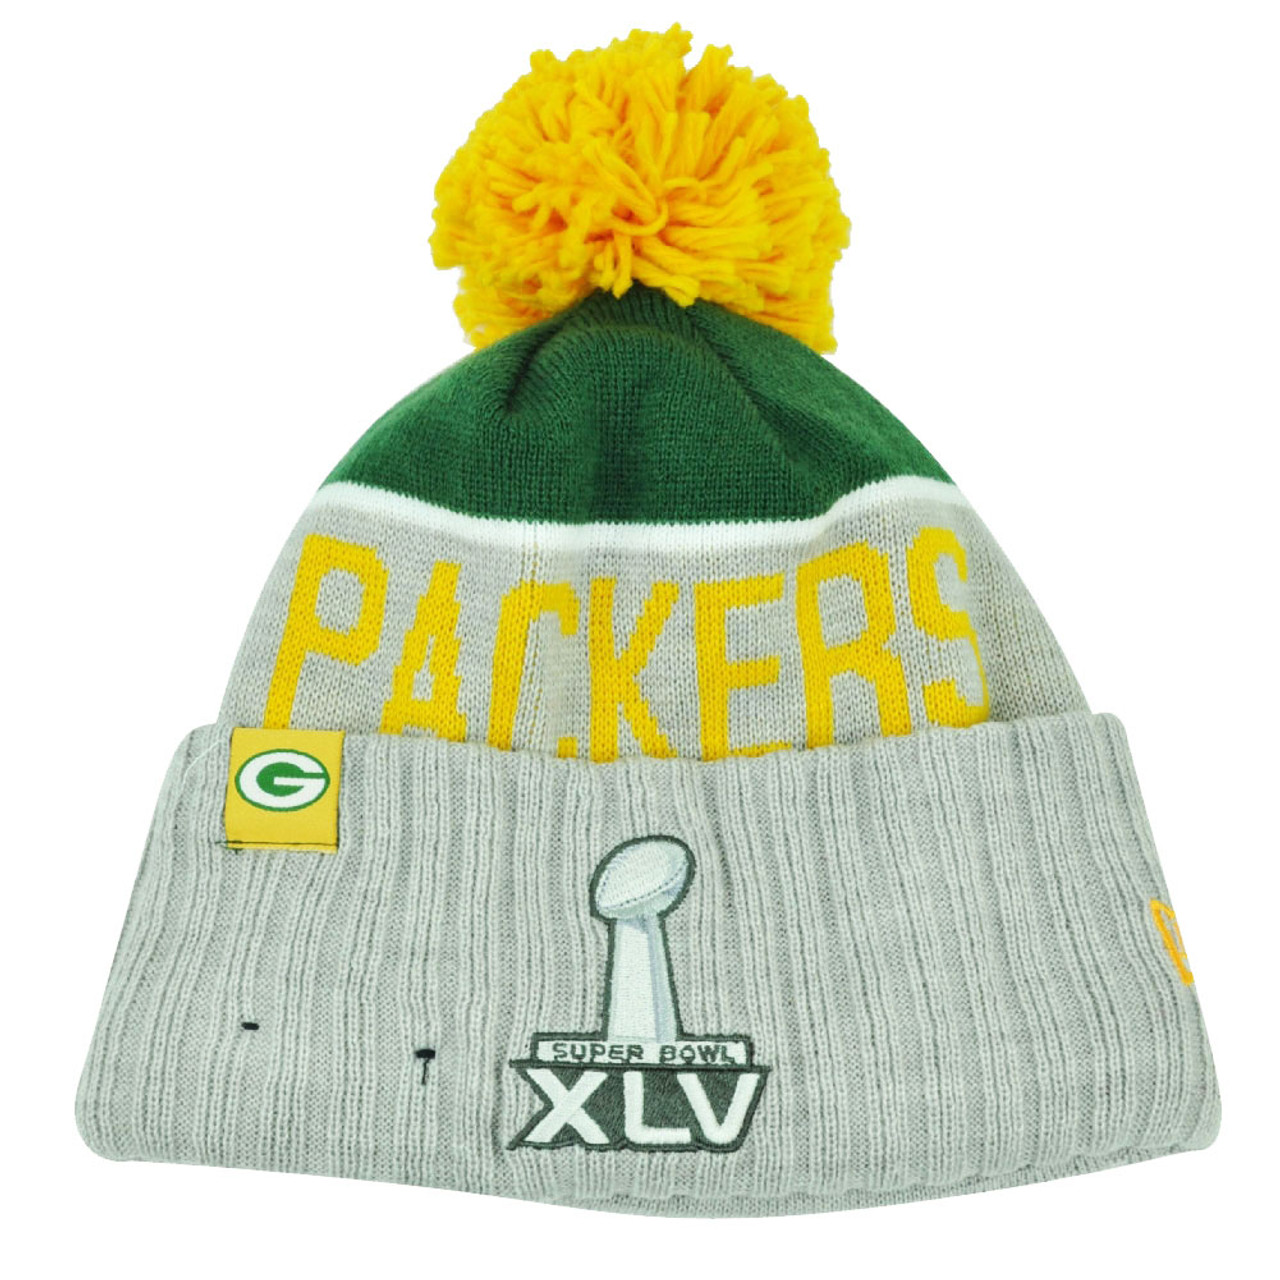 07e0dc8b5a8 NFL New Era Super Bowl XLV Sport Knit Green Bay Packers Knit Beanie Cuffed  Hat - Cap Store Online.com